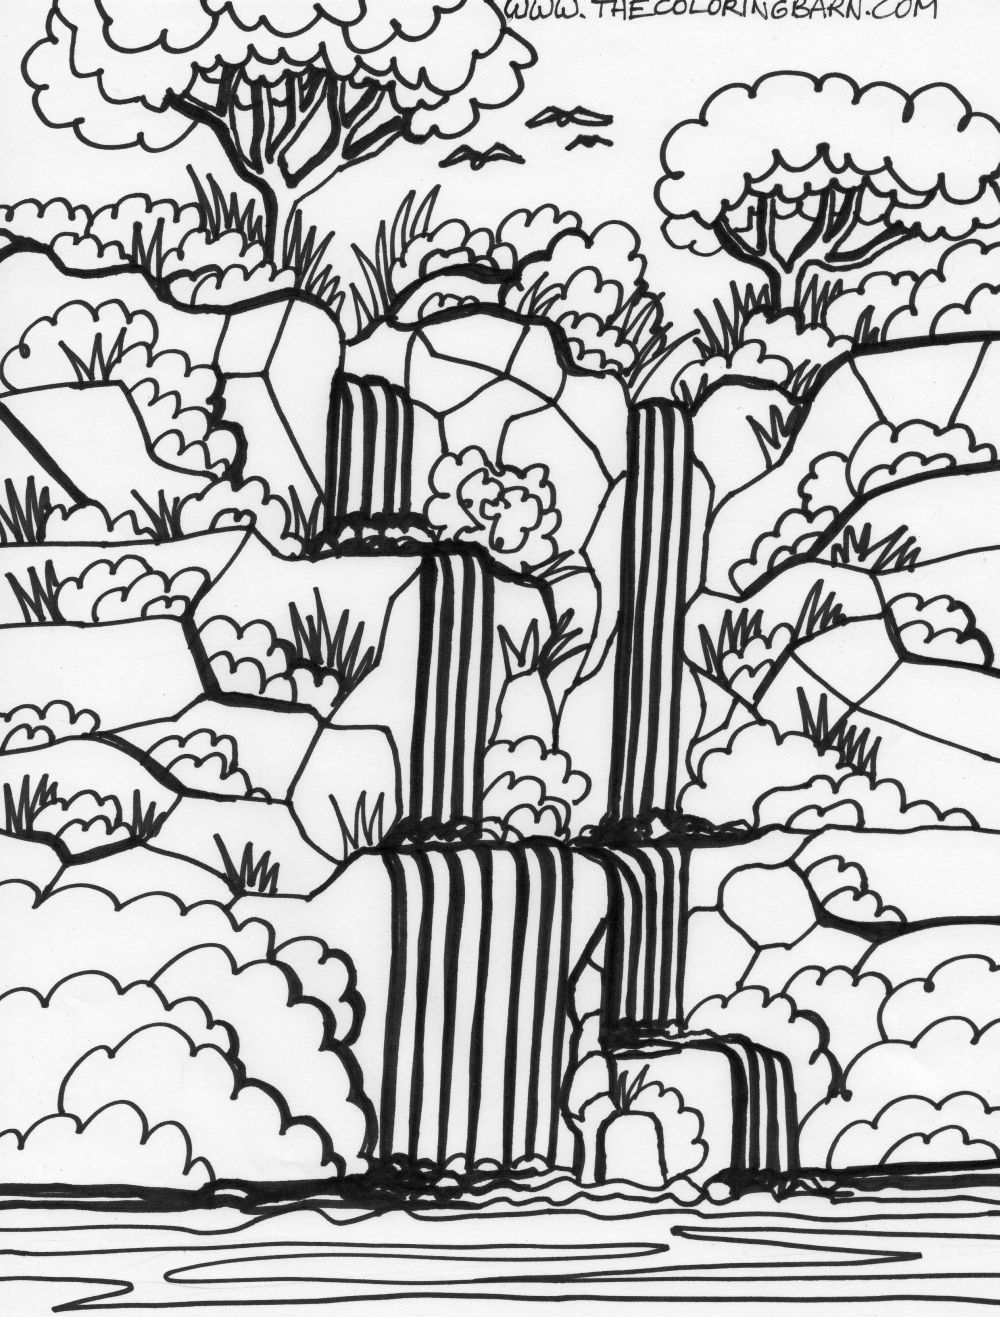 Coloring Pages for Kids: Waterfall Coloring Pages for Kids